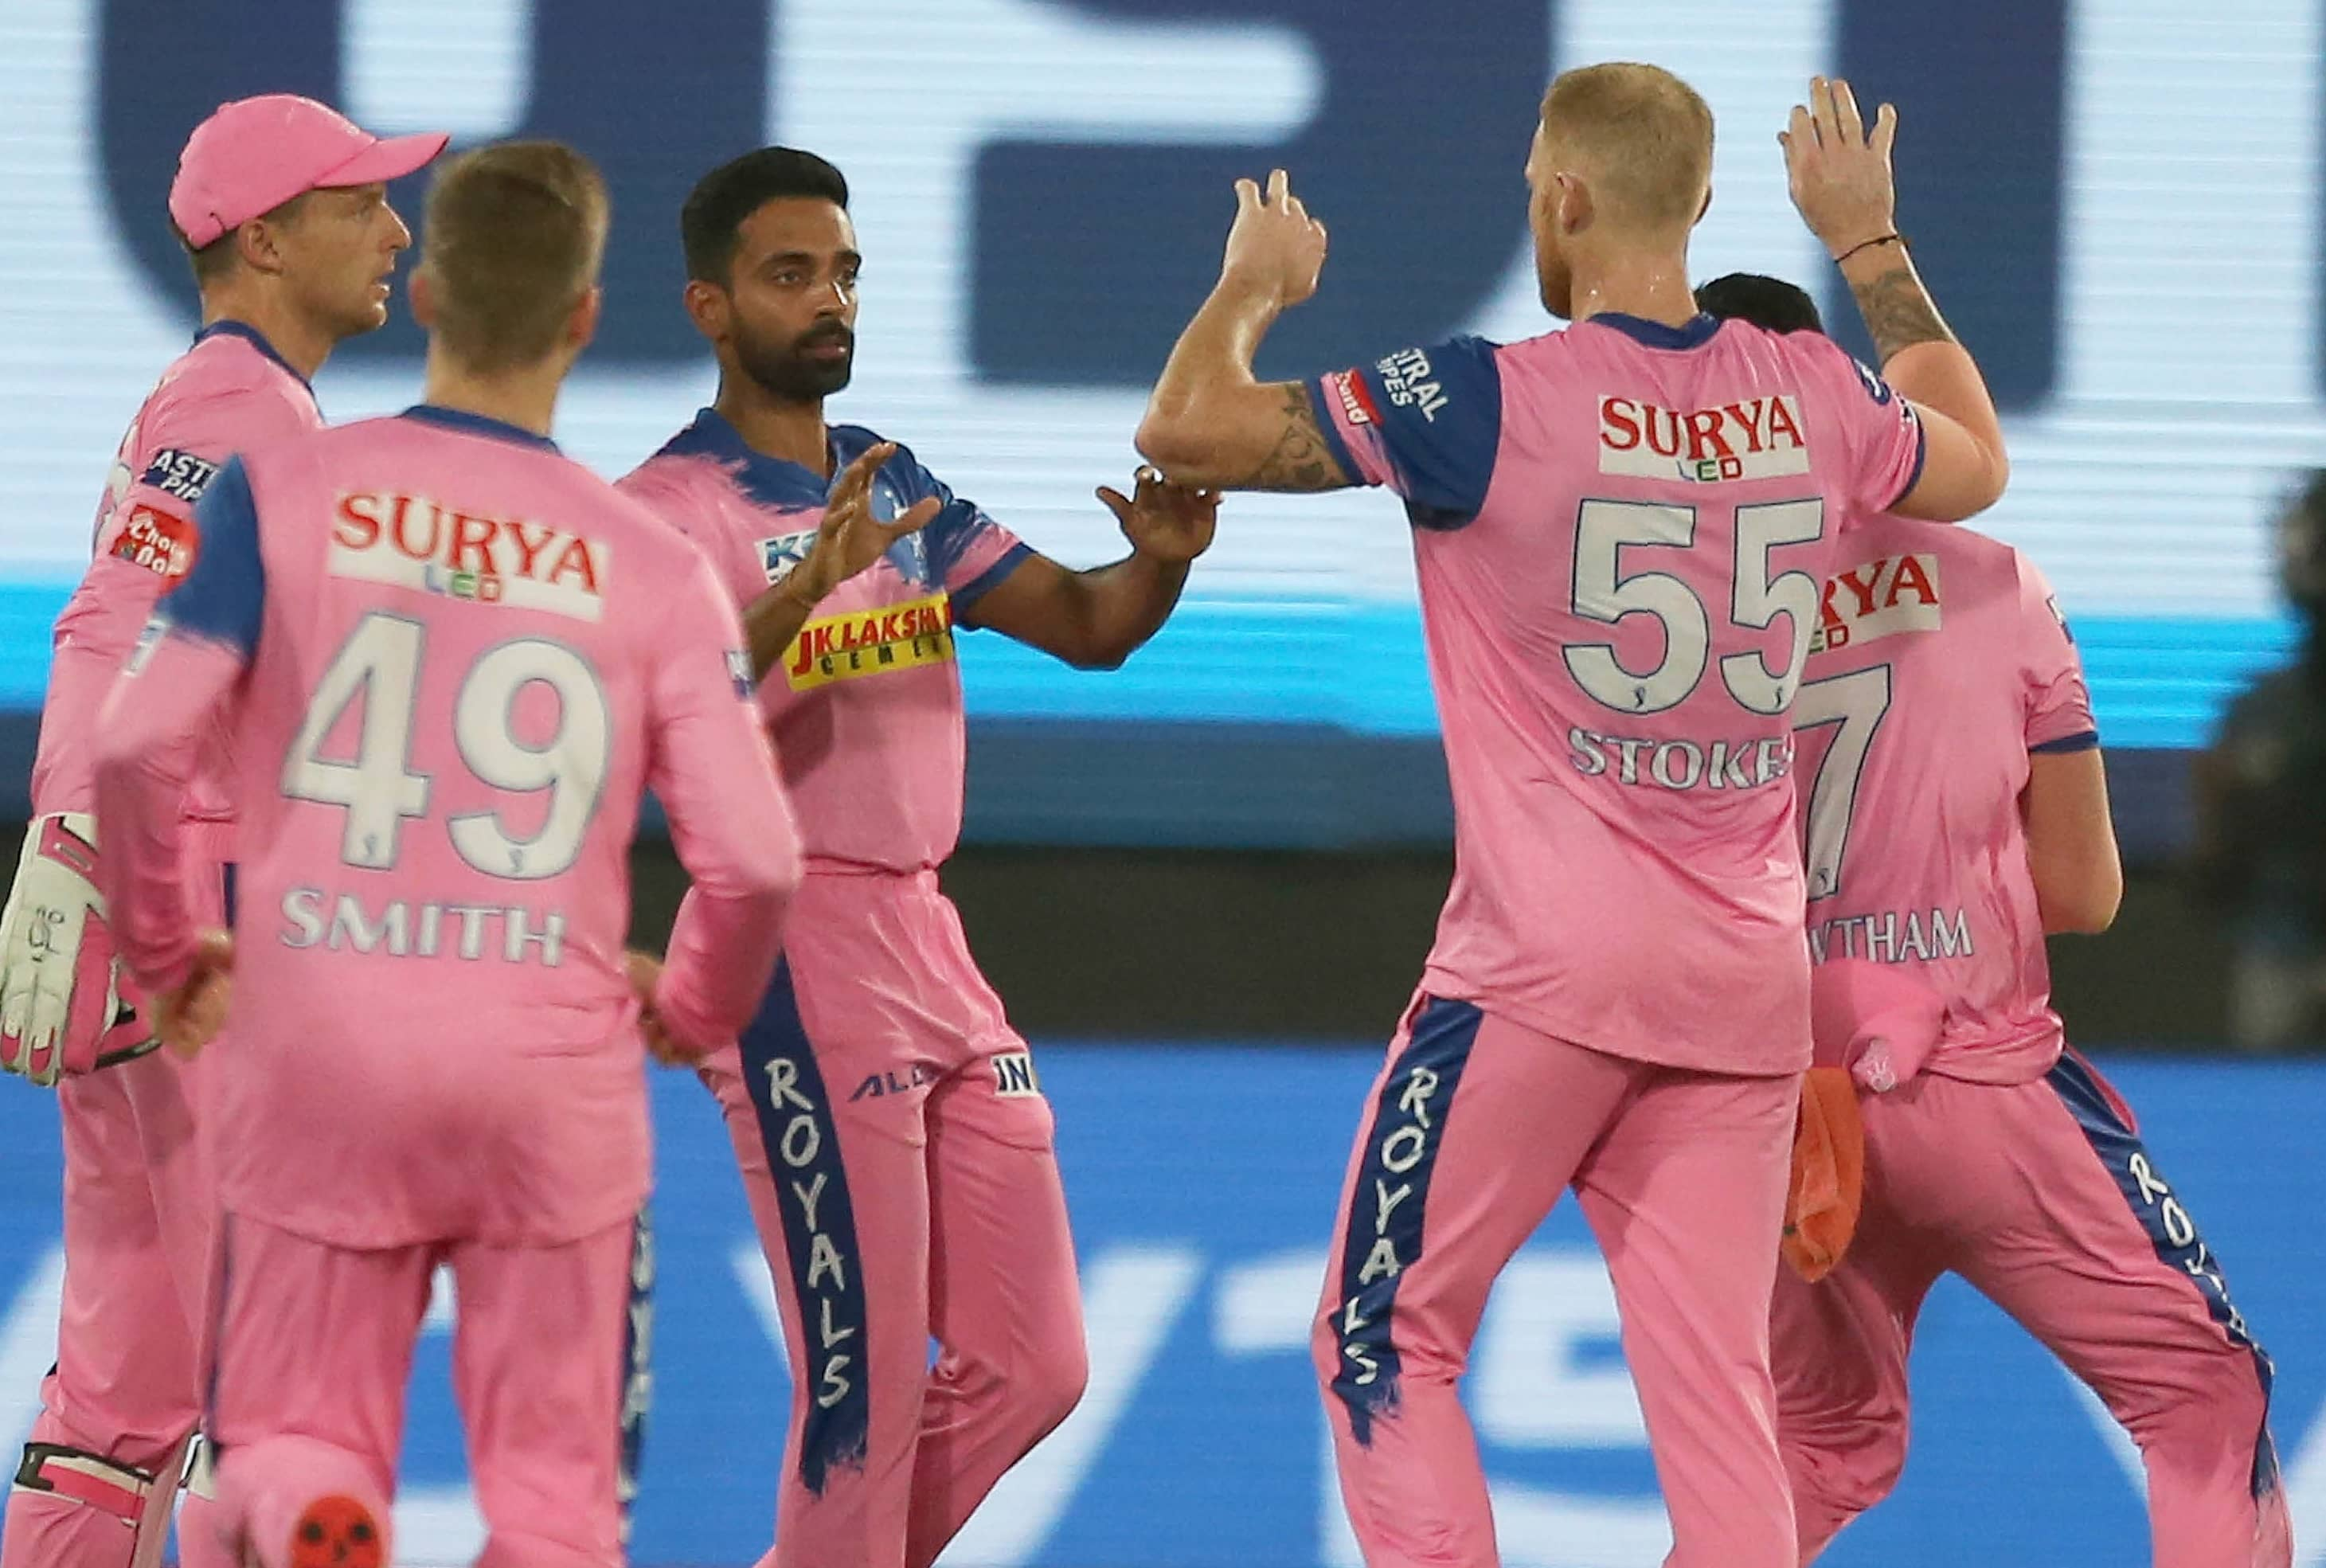 'Indian' Premier League: No Show without Foreigners